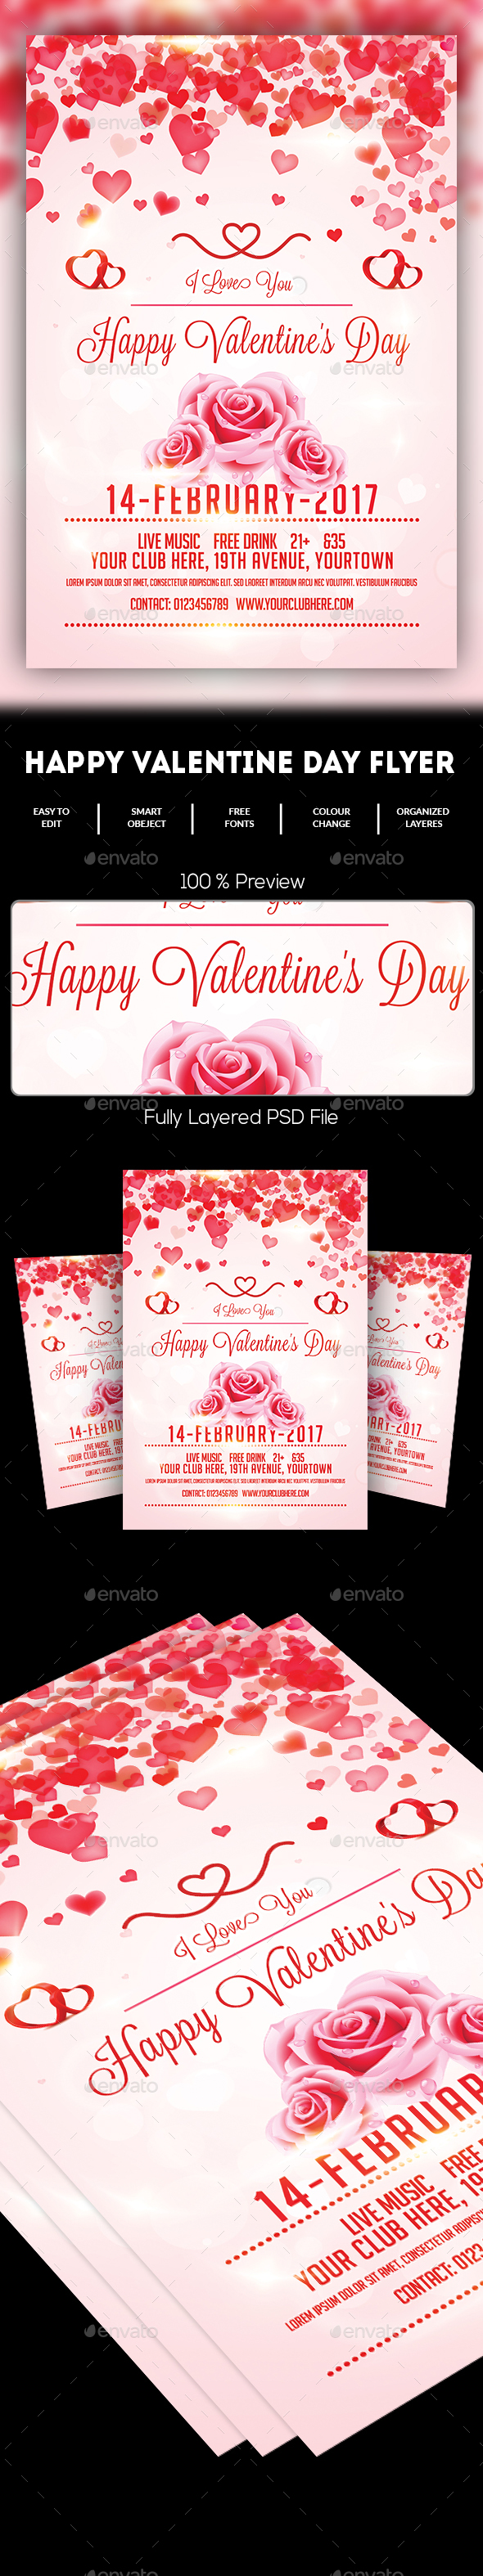 Valentine's Day Flyer Template - Events Flyers